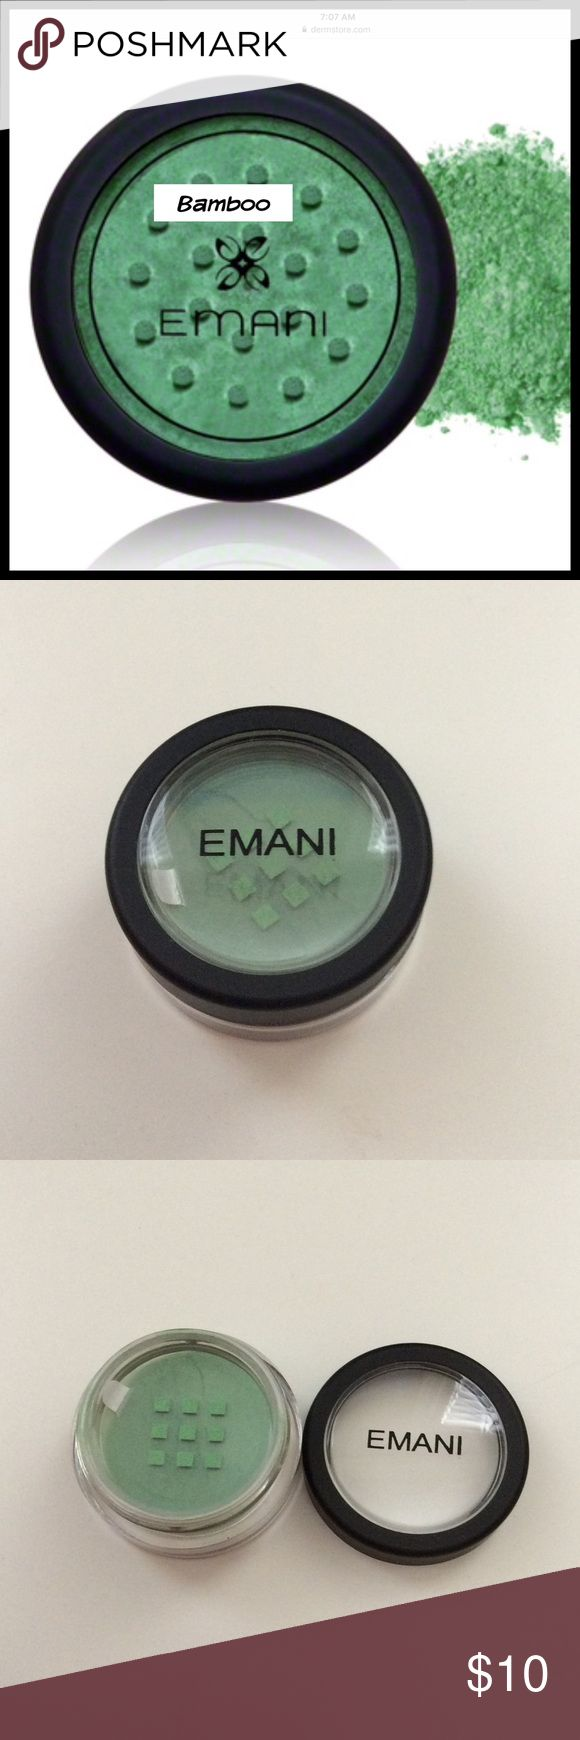 Emani Crushed Minerals Color Dust #828 Bamboo Brand New!! Vegan, Toxin Free, Organic, Cruelty Free  100% pure mineral pigments for eyes, lips or face made completely free of talc or fillers. Emani Mineral Color Dust goes on sheer or for an intense finish, just wet brush and apply. Blend with an Emani base Transformer to create beautiful colors. Emani Makeup Eyeshadow